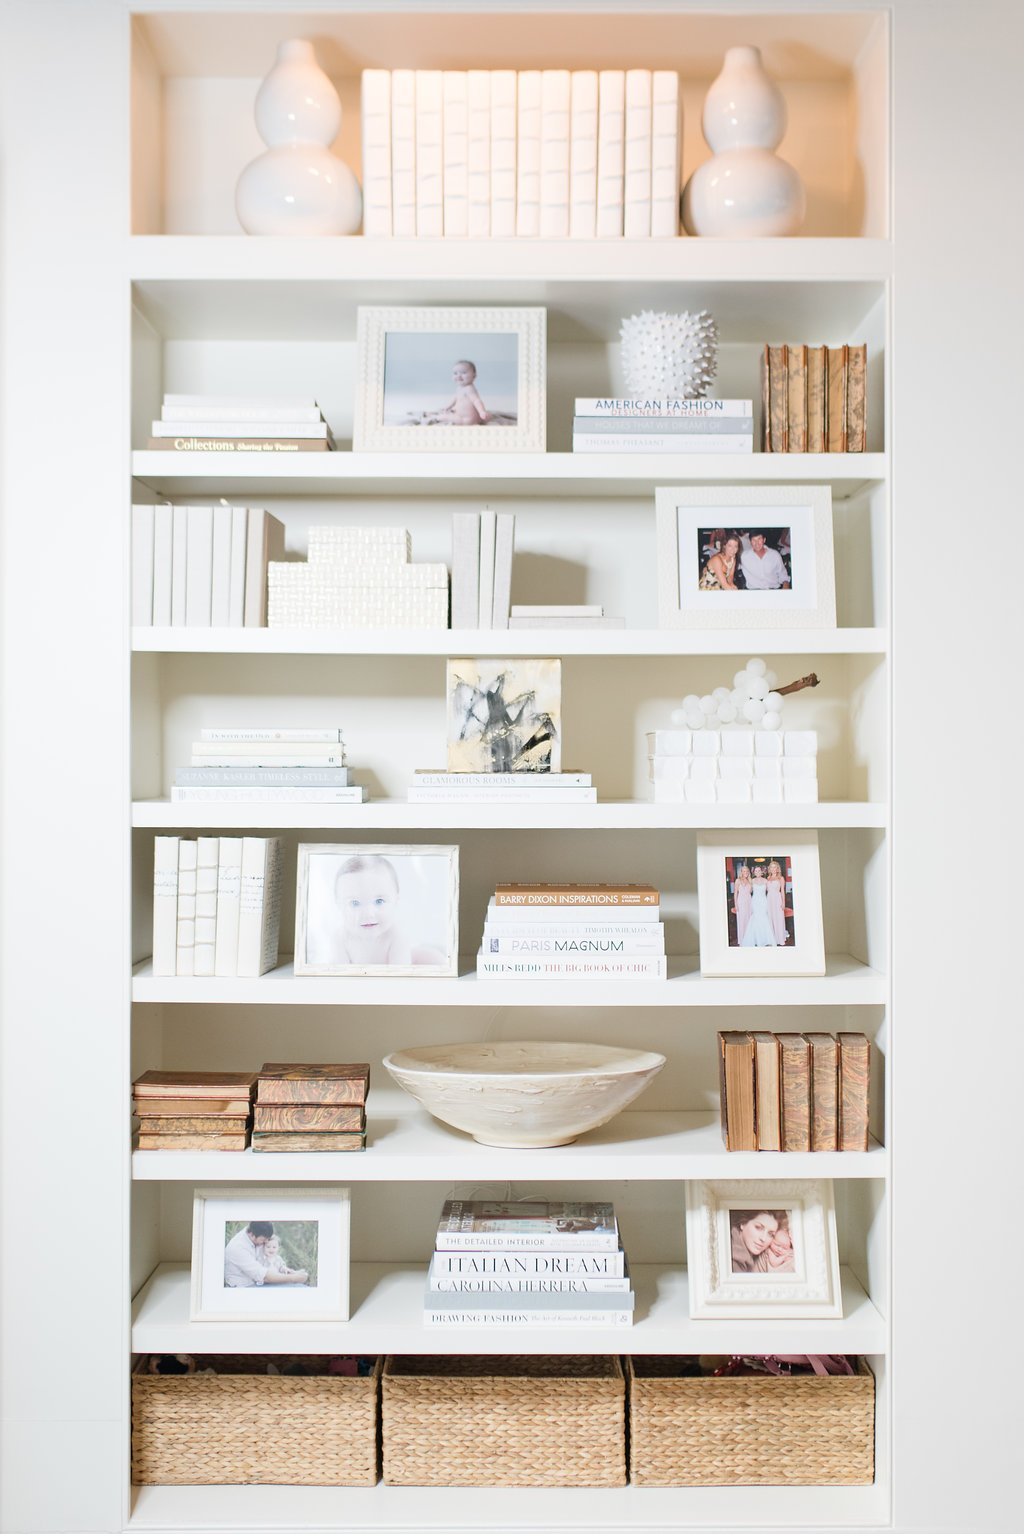 1024x1534 How To Style Bookshelves J Cathell